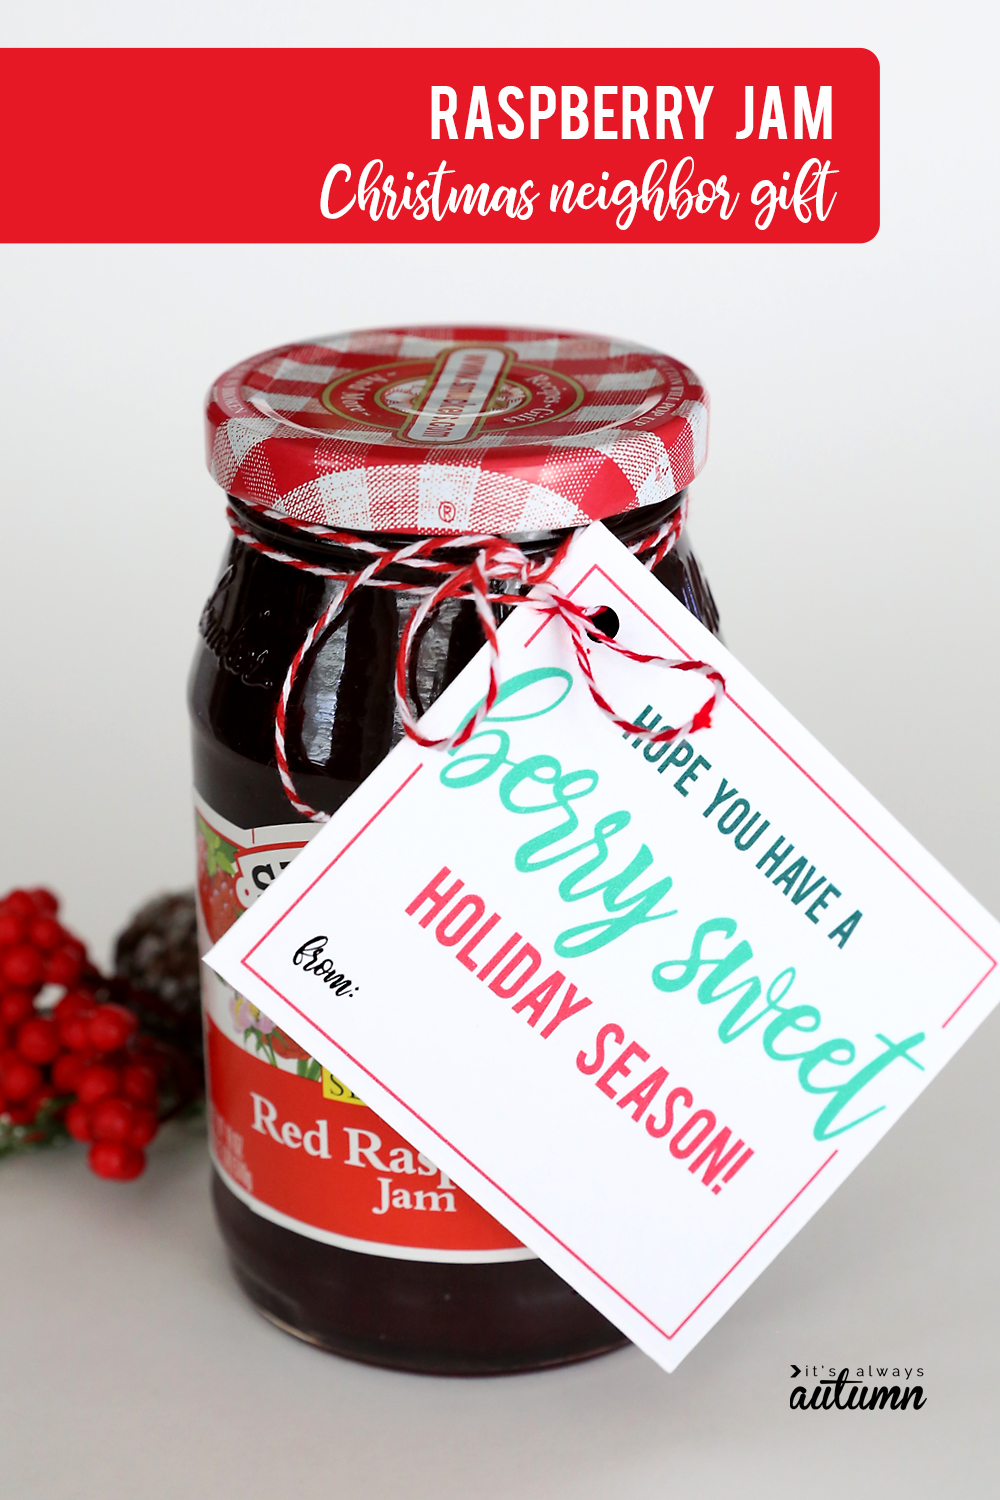 17 easy Christmas neighbor gift ideas with printable tags! Berry jam neighbor gift idea.